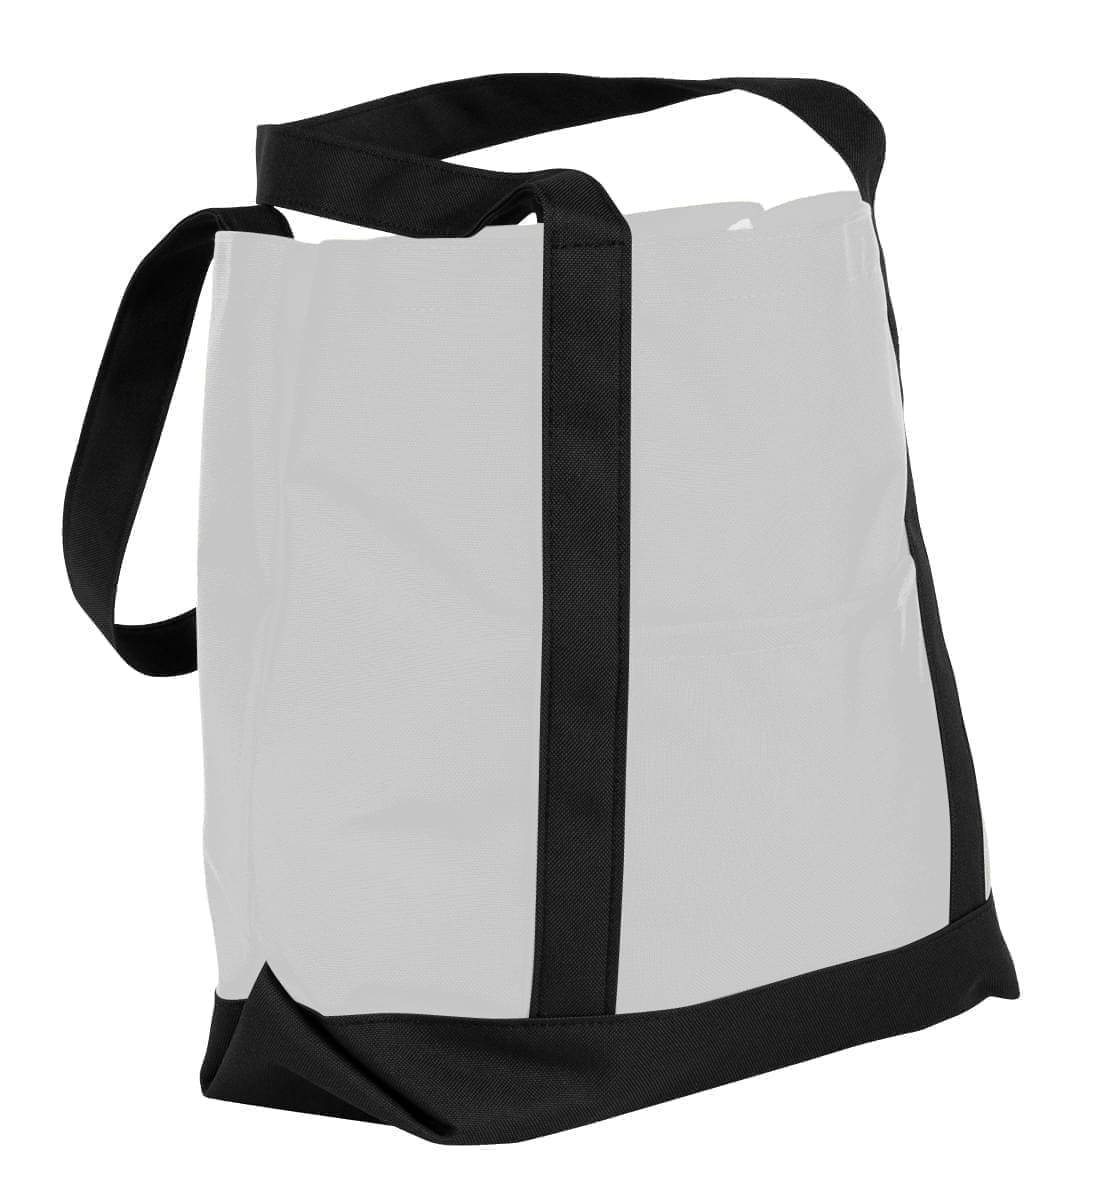 USA Made Nylon Poly Boat Tote Bags, White-Black, XAACL1UA3C